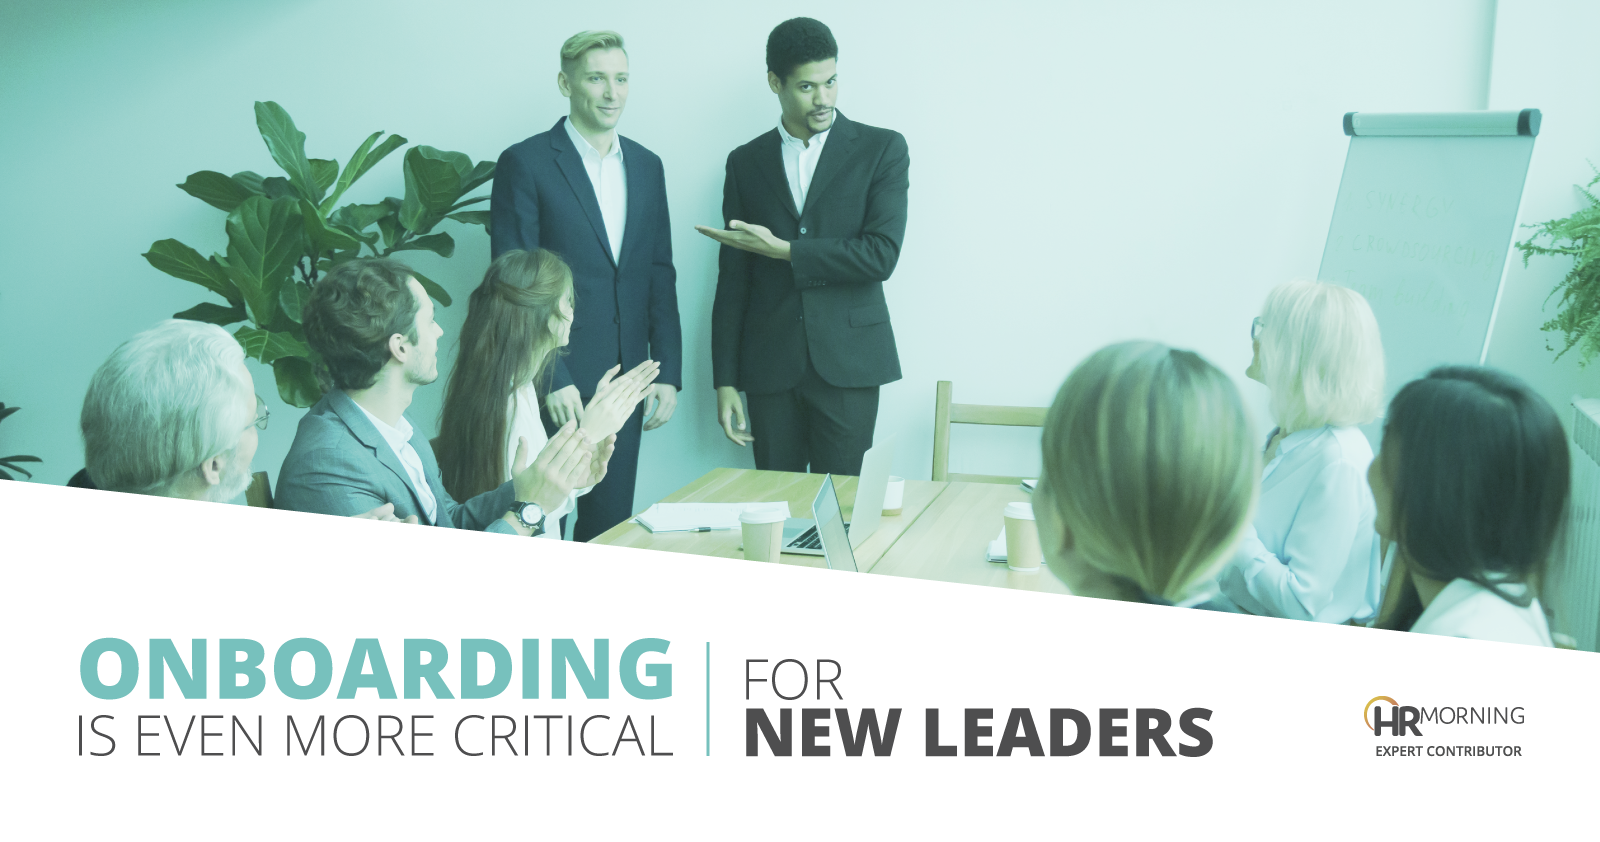 Onboarding is even more critical for new leaders